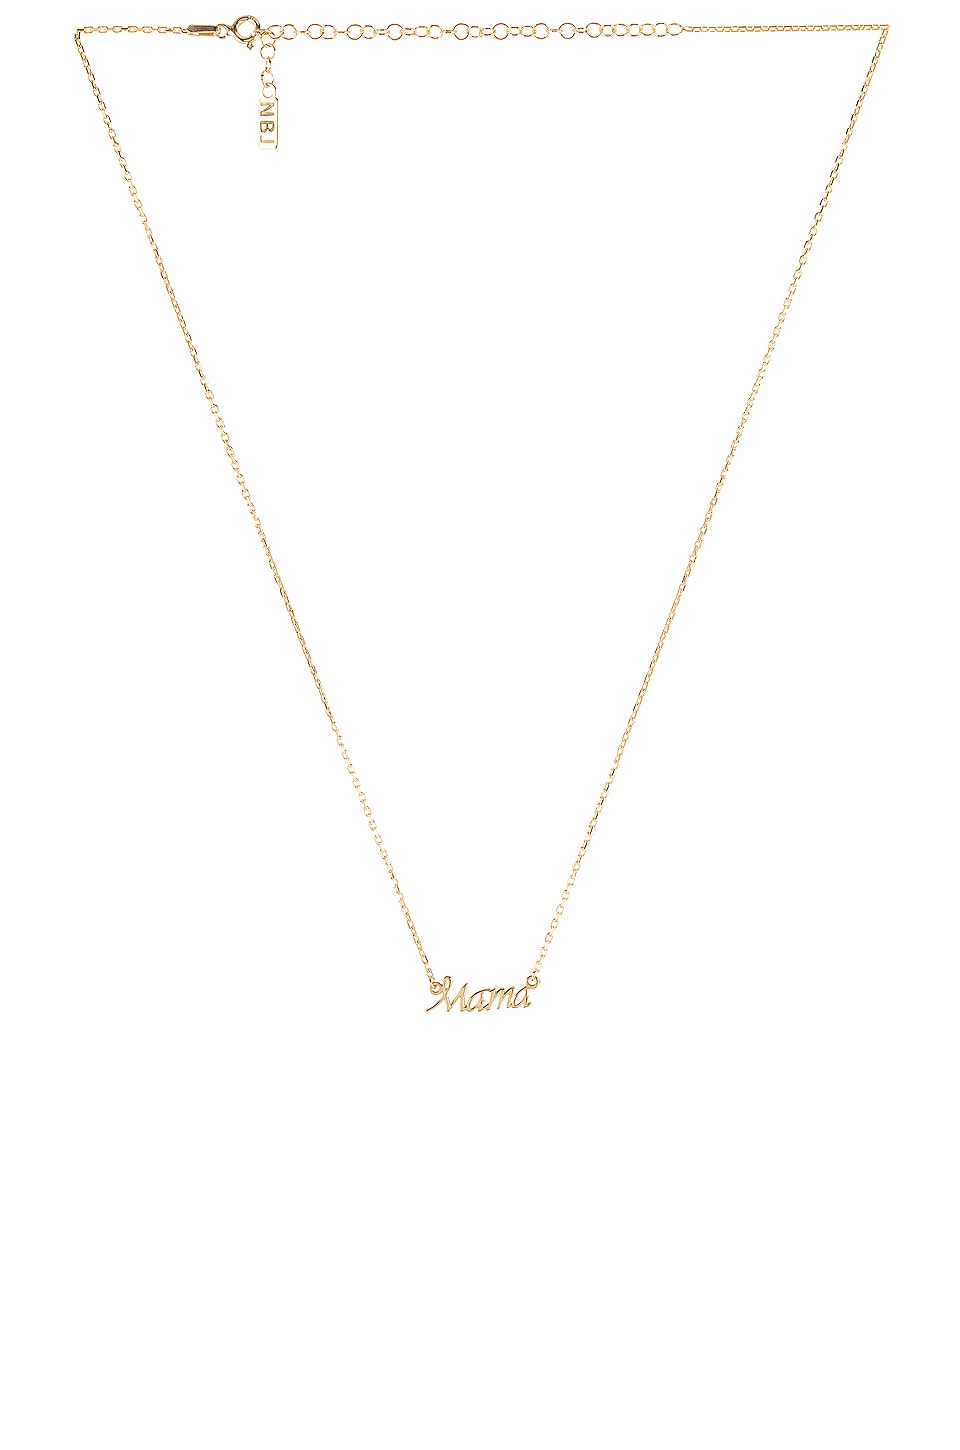 Natalie B Jewelry Mama Necklace in Gold